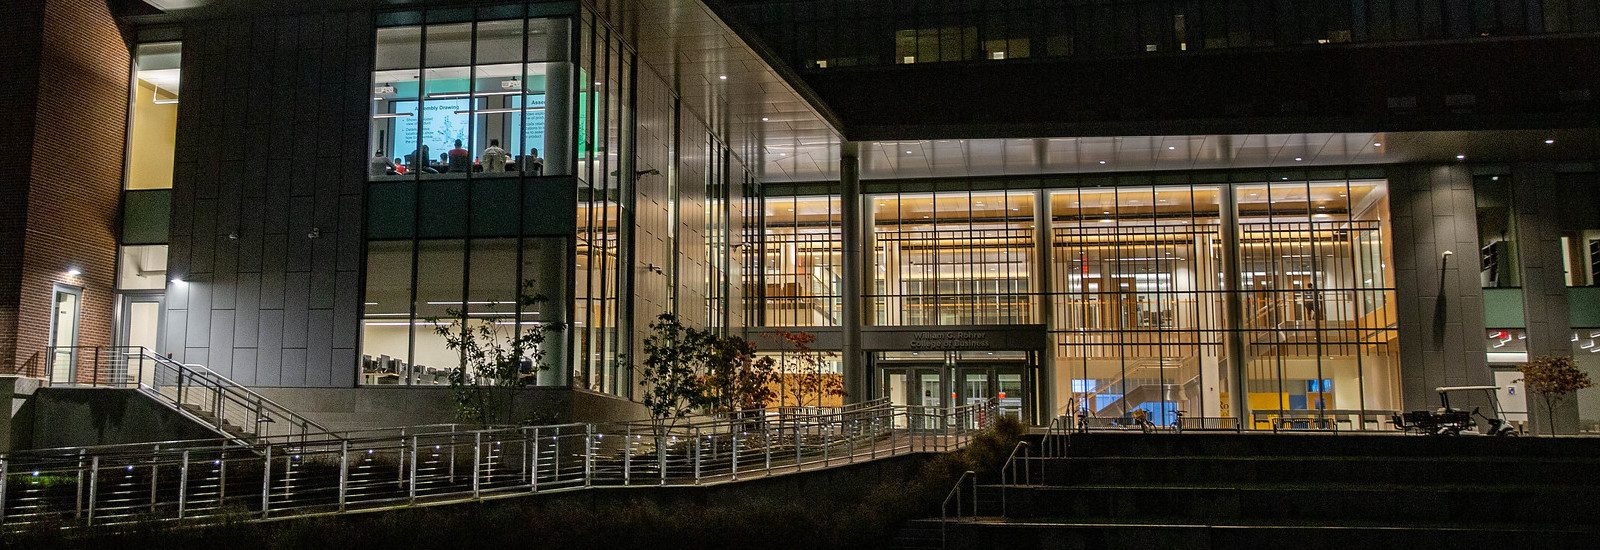 Exterior shot of the Rohrer College of Business